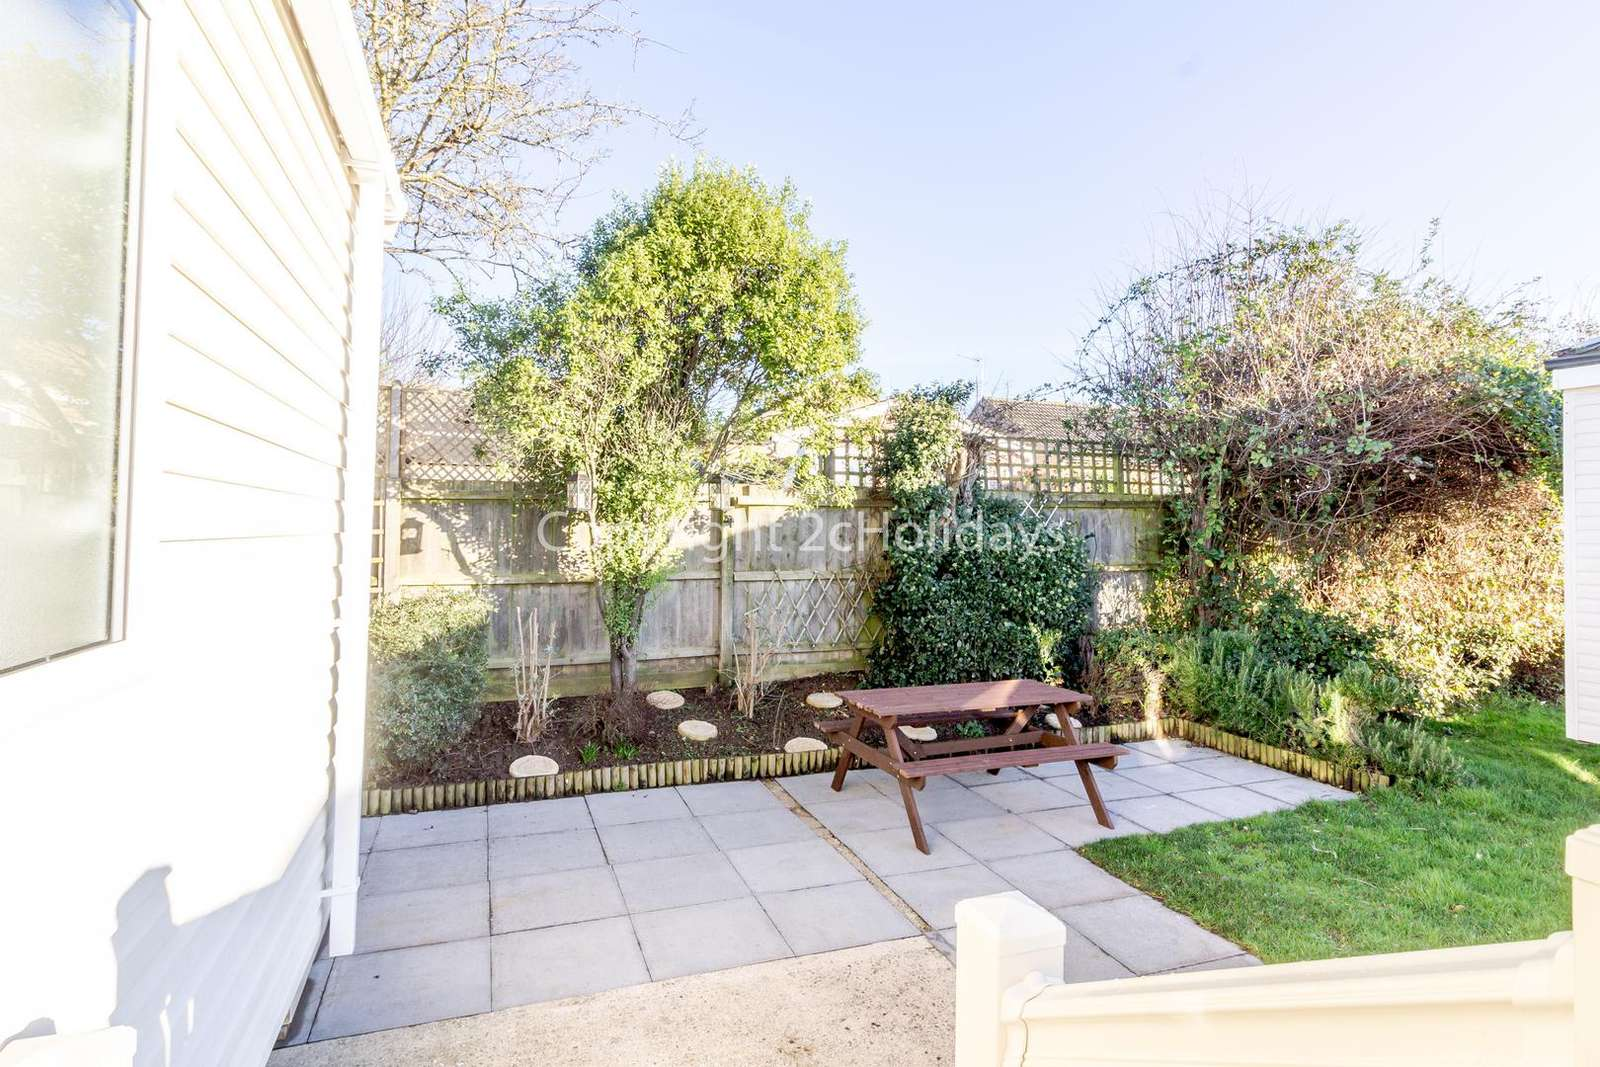 Lovely private patio area with outside furniture to relax in the sunshine